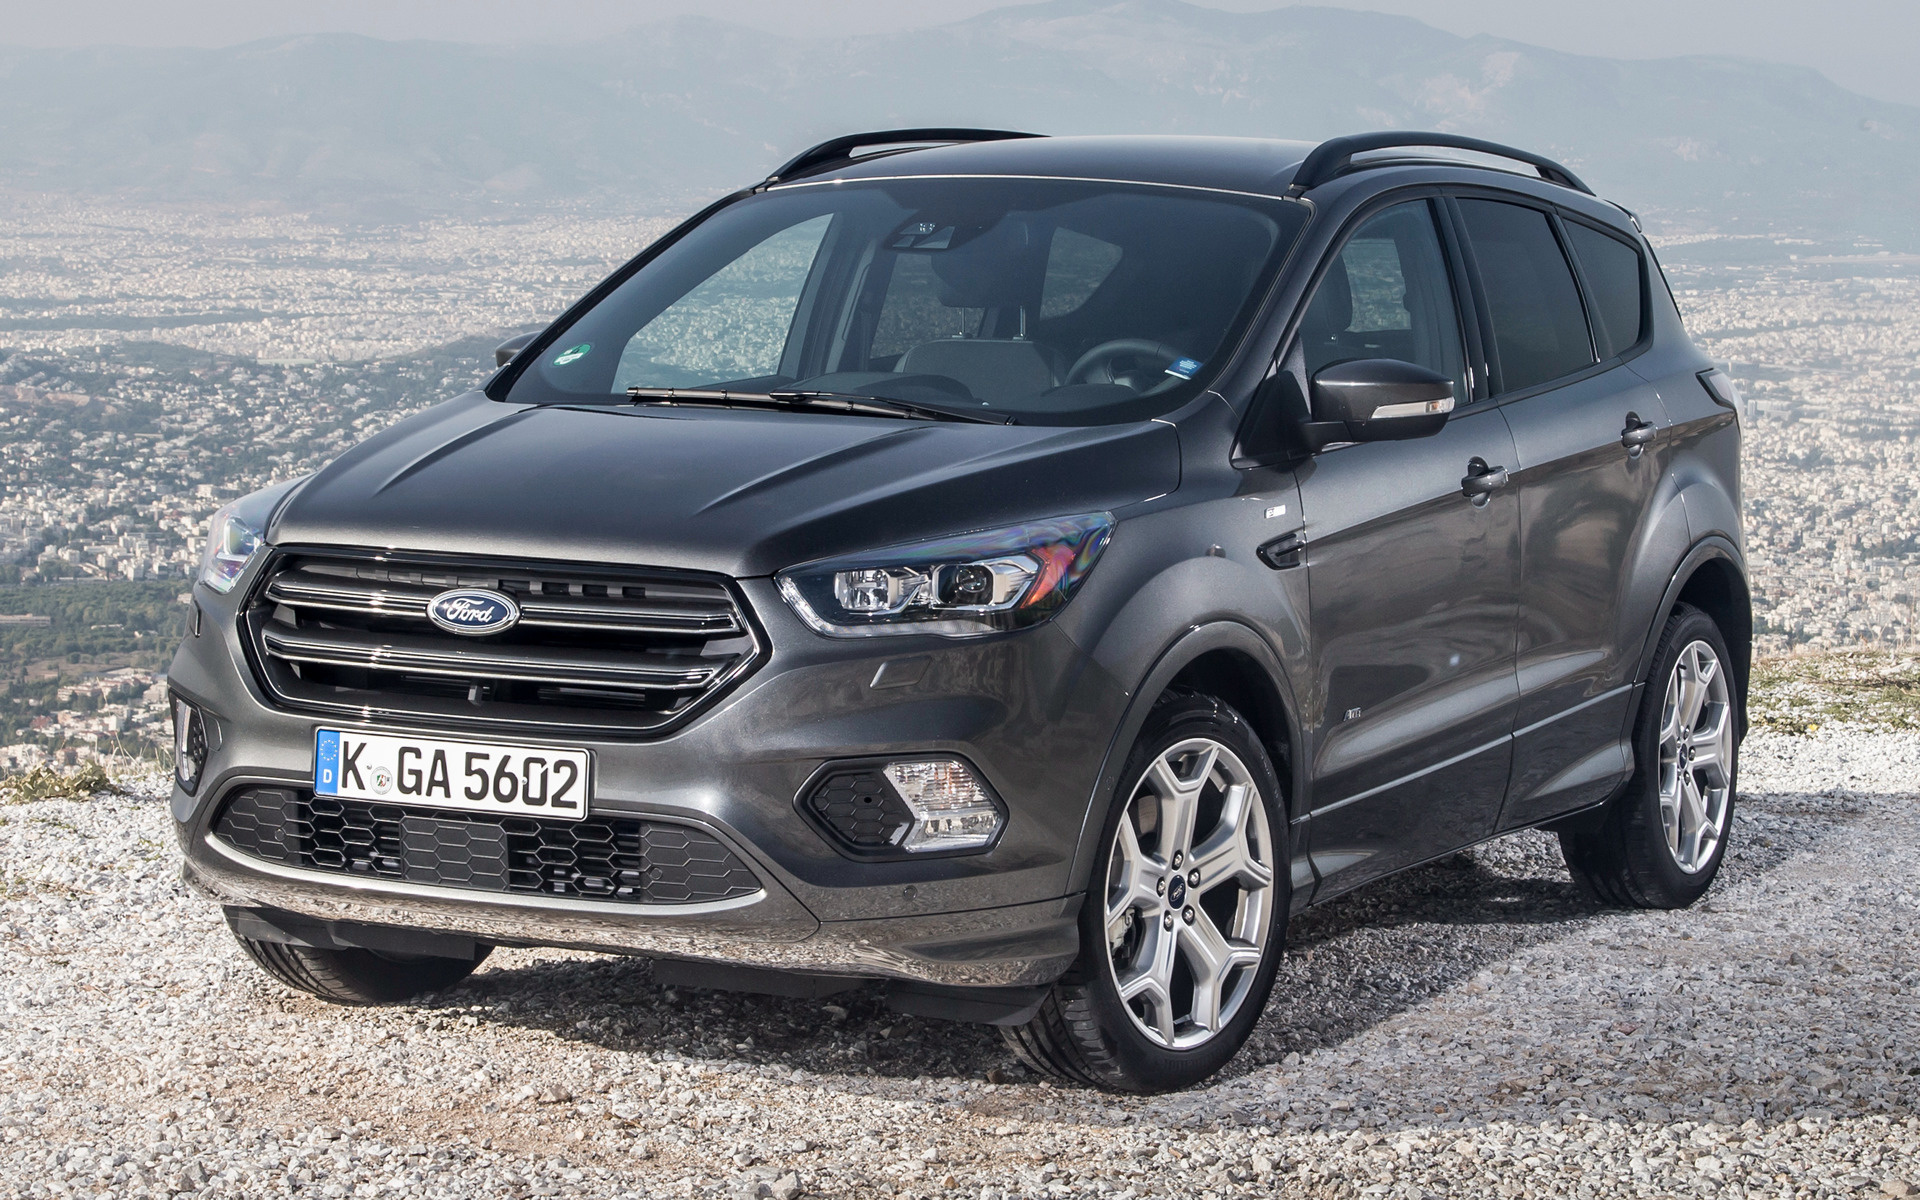 Ford Kuga ST-Line (2016) Wallpapers and HD Images - Car Pixel